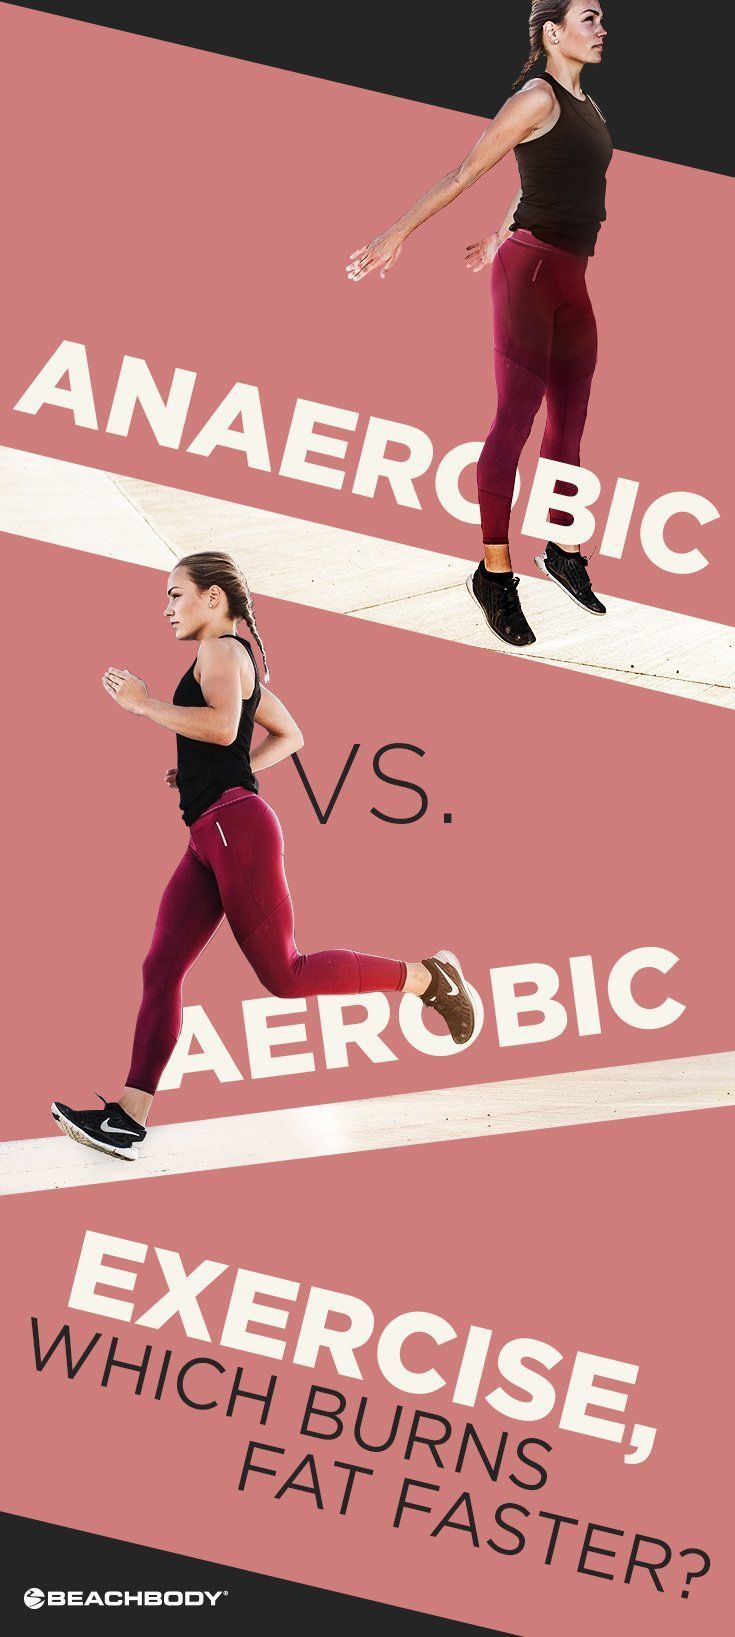 Best aerobic exercise to burn fat fast